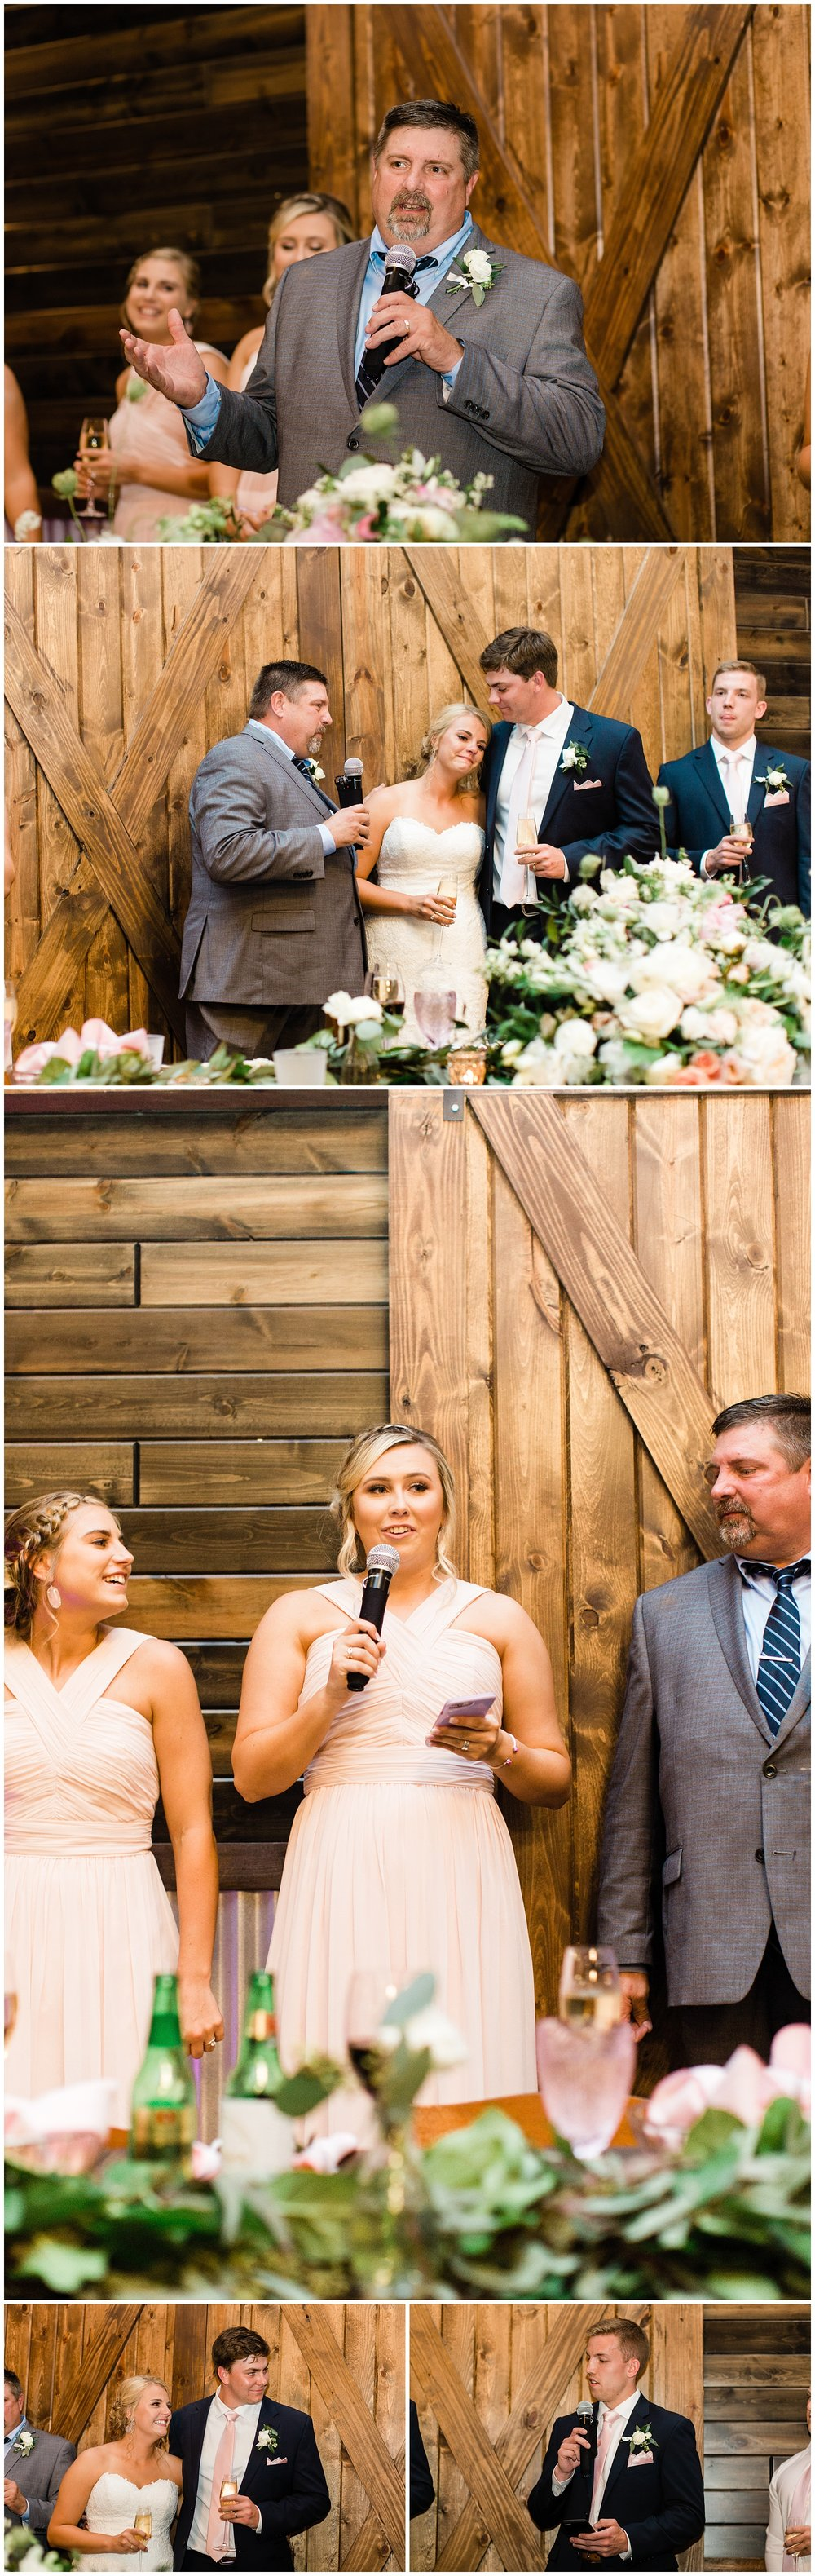 Peach_Creek_Ranch_Wedding_0036.jpg